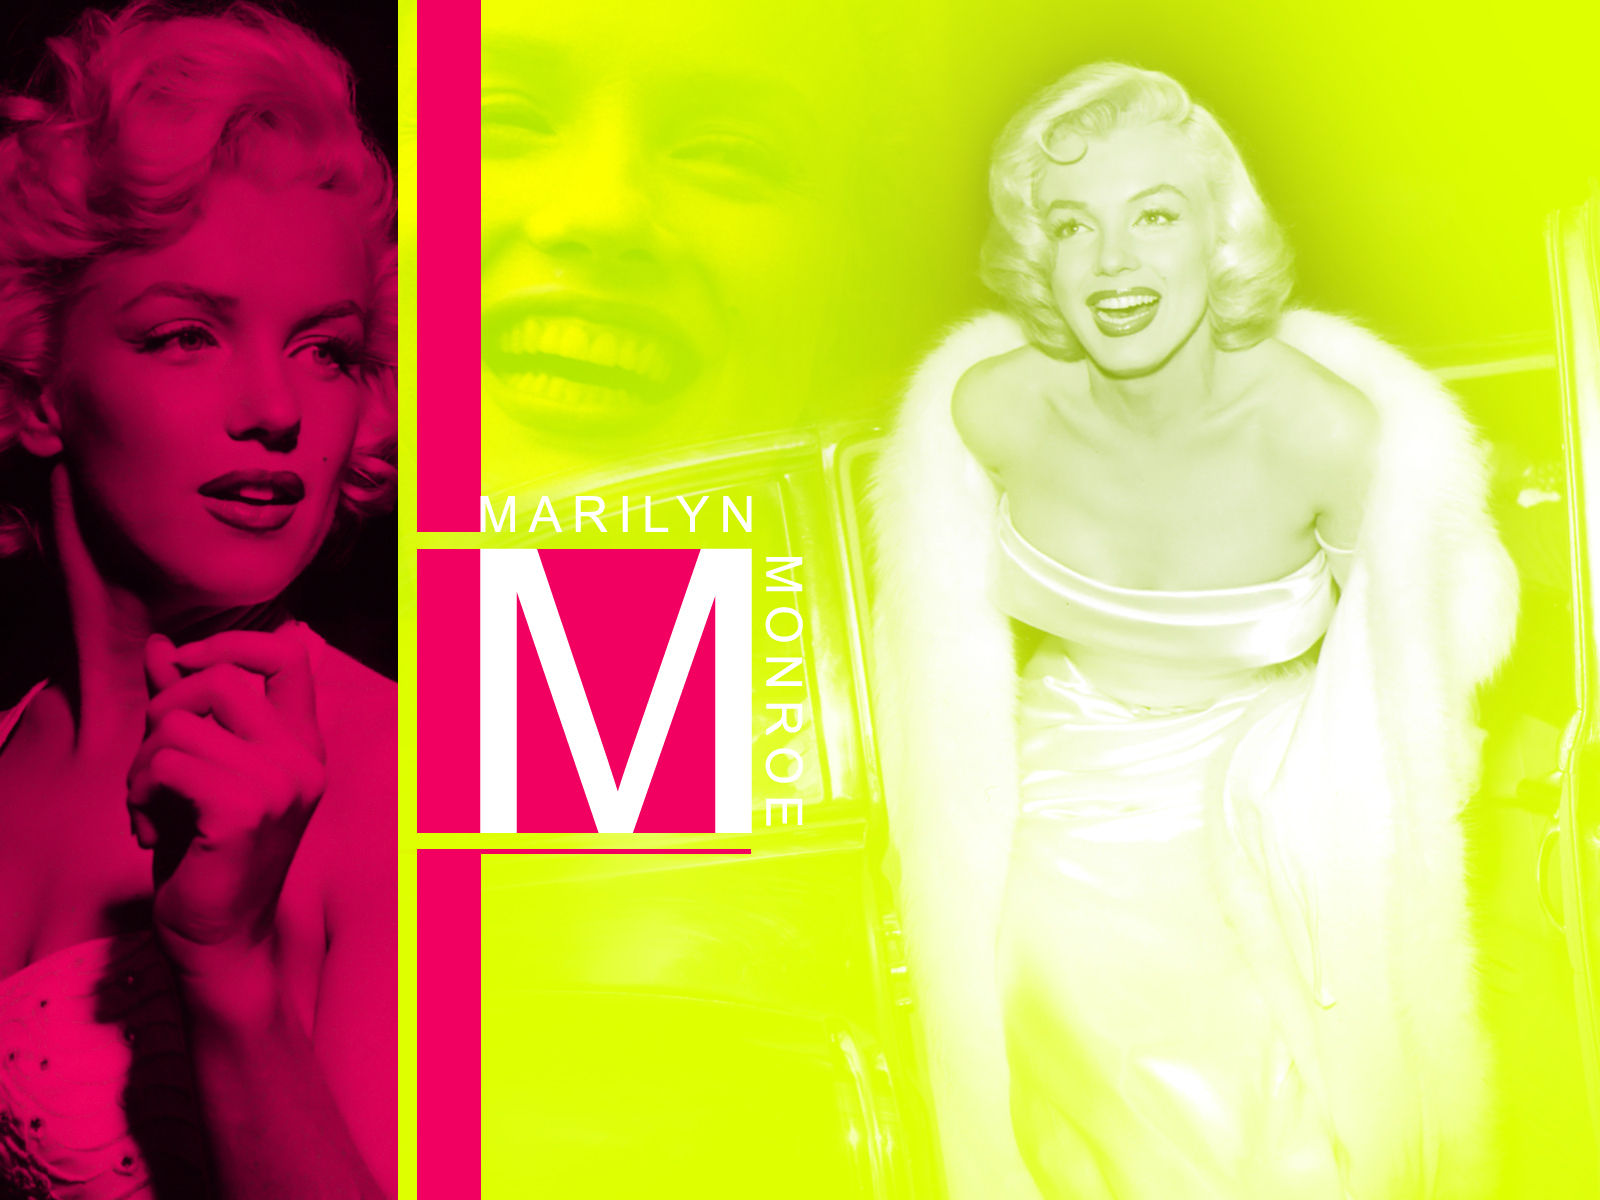 Marilyn+monroe+artichoke+queen